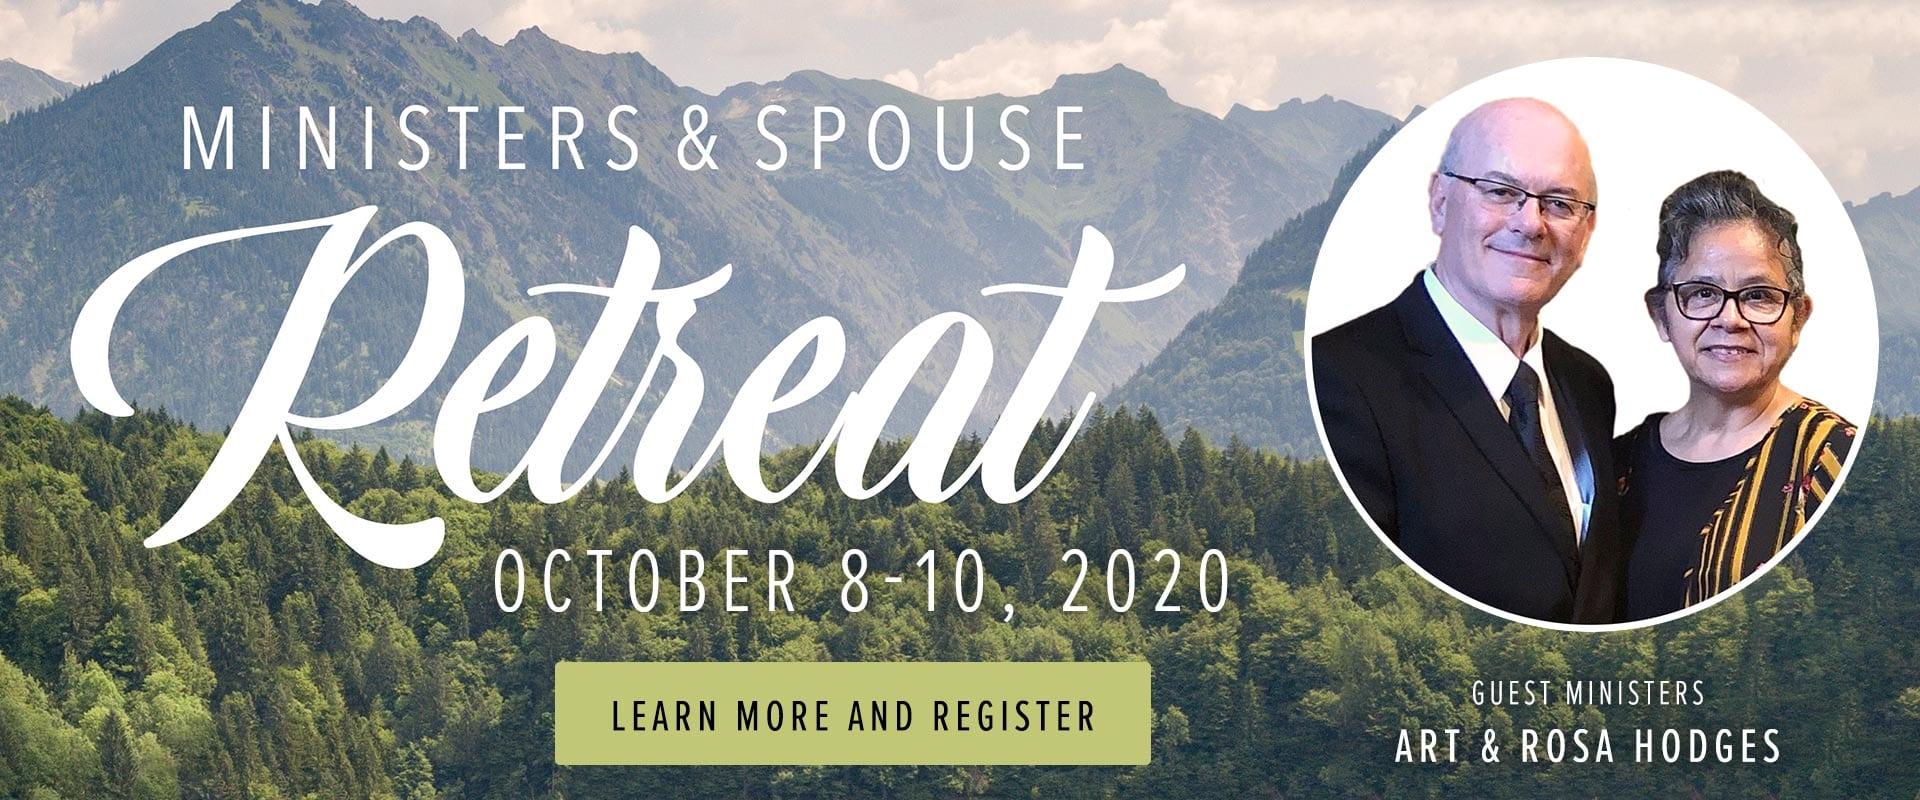 Ministers & Spouse Retreat 2020